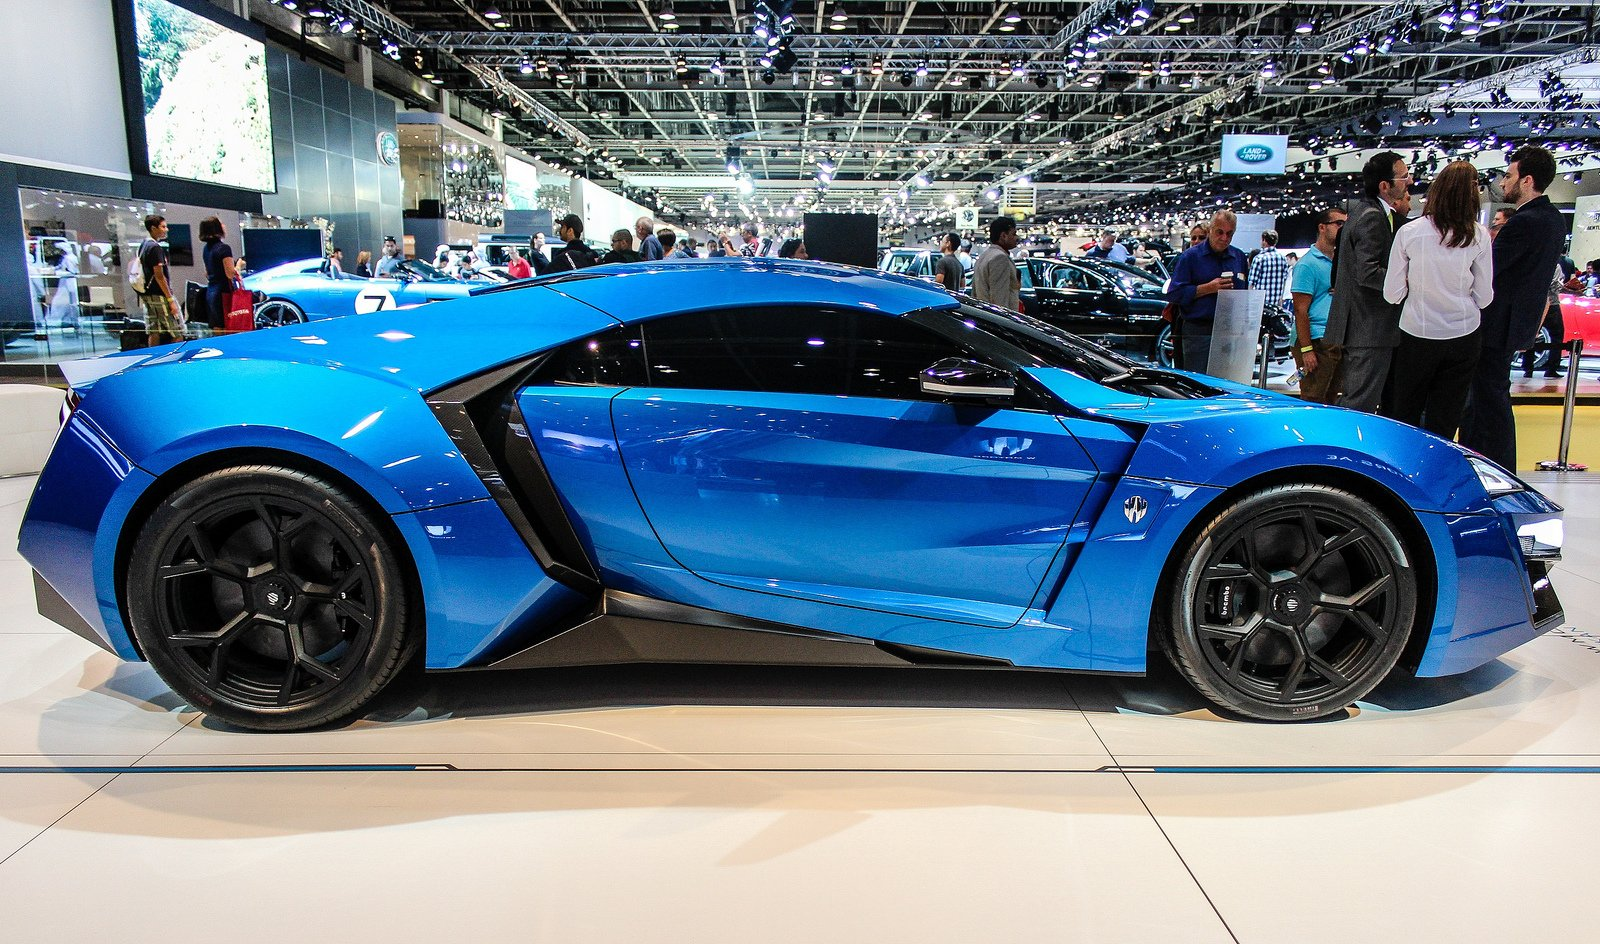 Fast And Furious 7 Cars Wallpapers Hd Motors Lykan Hypersport Concept Car Dreamcar Supercar